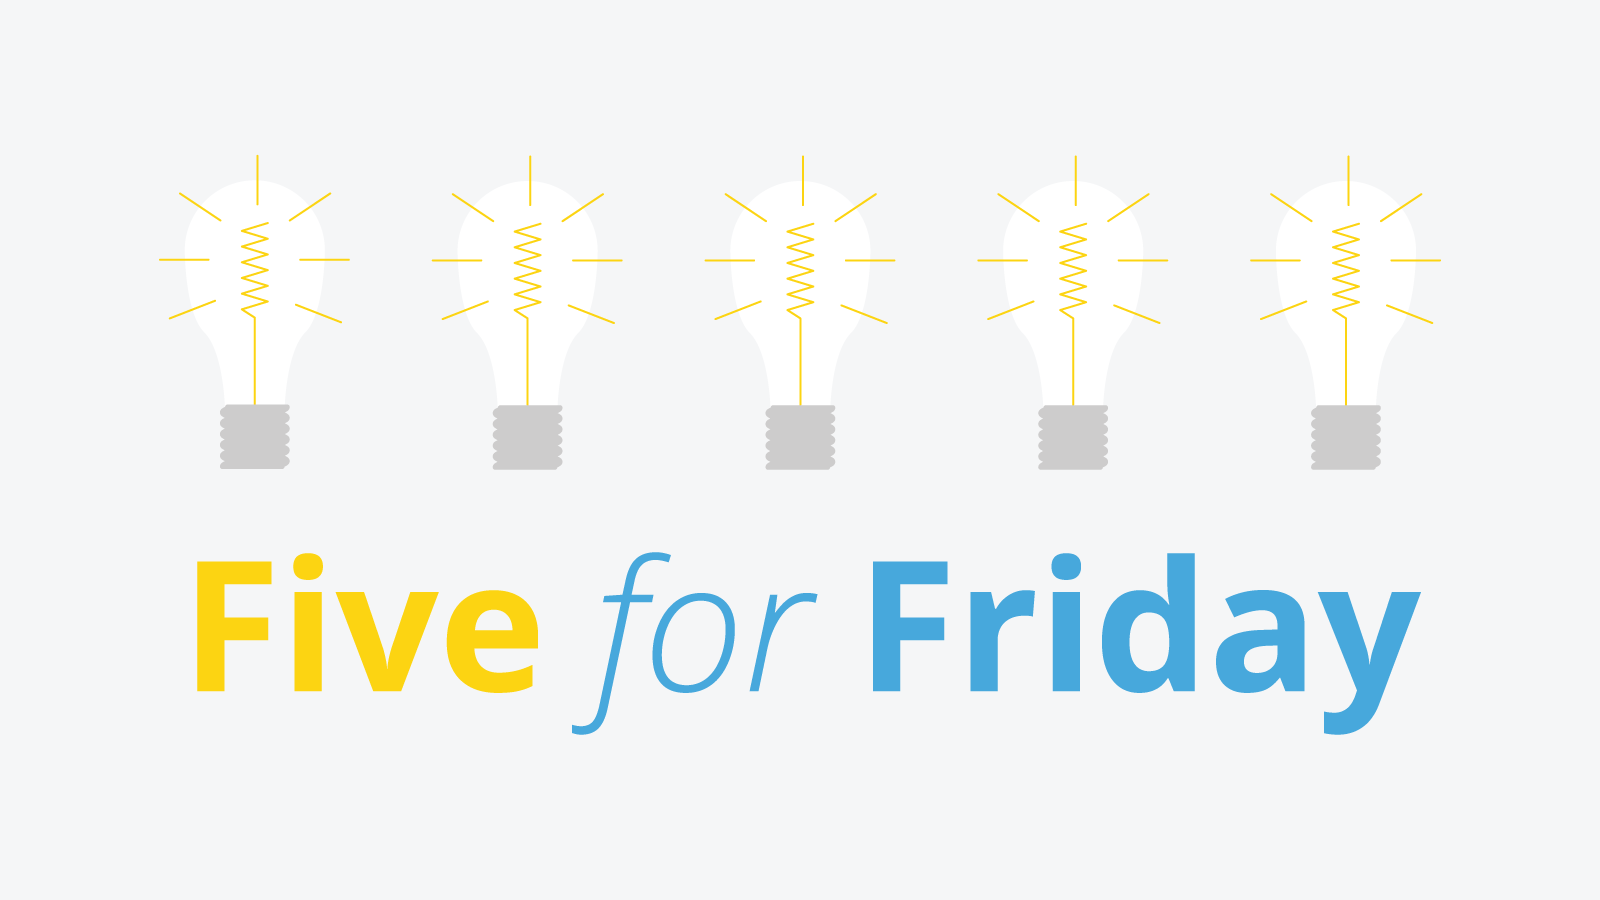 Five for Friday: Intranet innovations